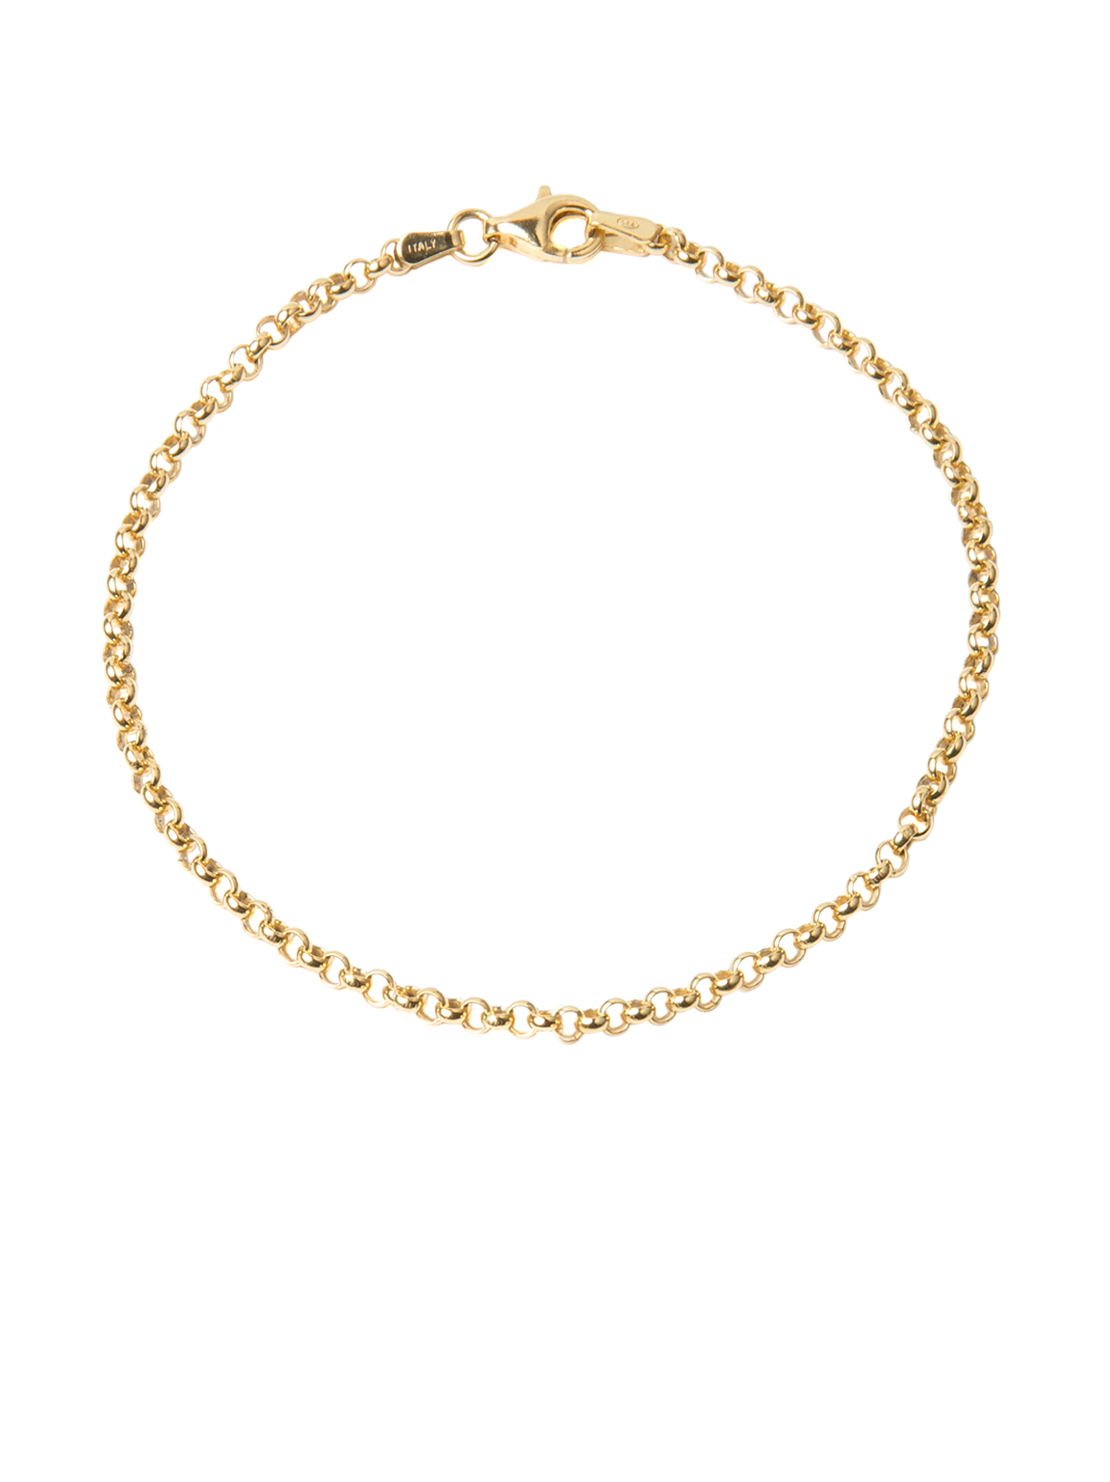 Gold Belcher Chain Bracelet - Tilly Sveaas Jewellery